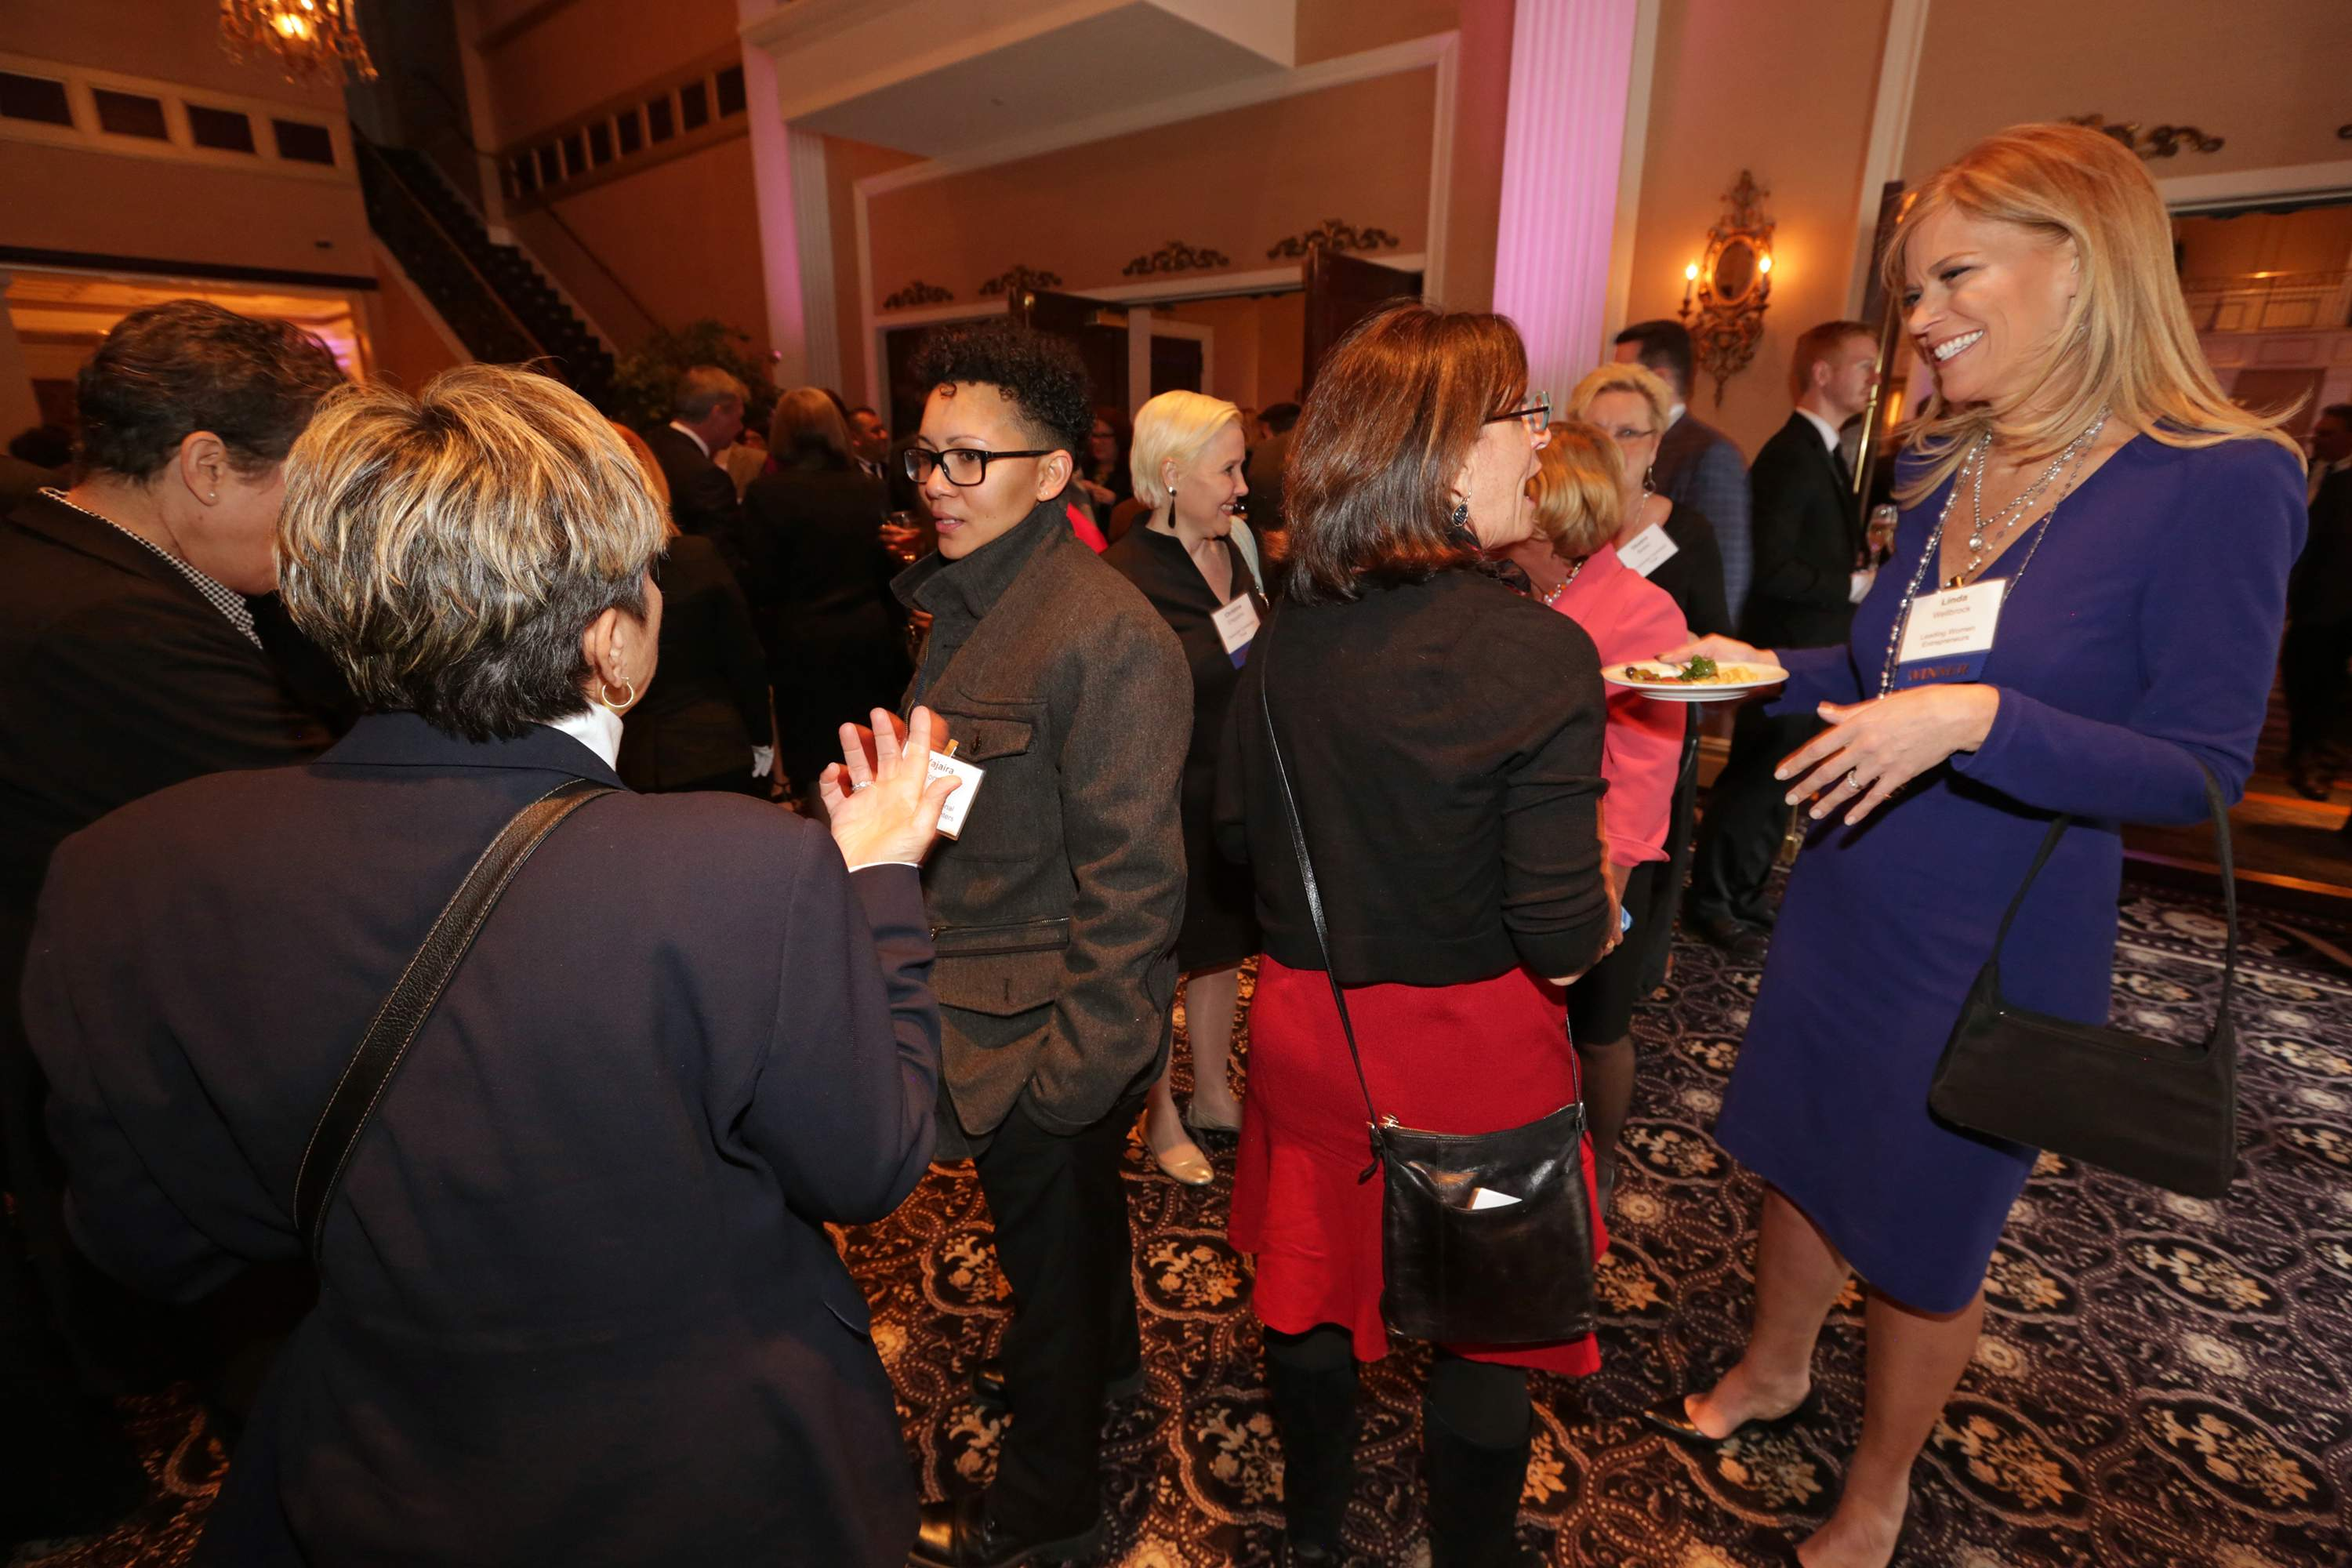 Pictured is Linda Wellbrock of Leading Women Entrepreneurs at the cocktail reception of the Best 50 Women in Business event.